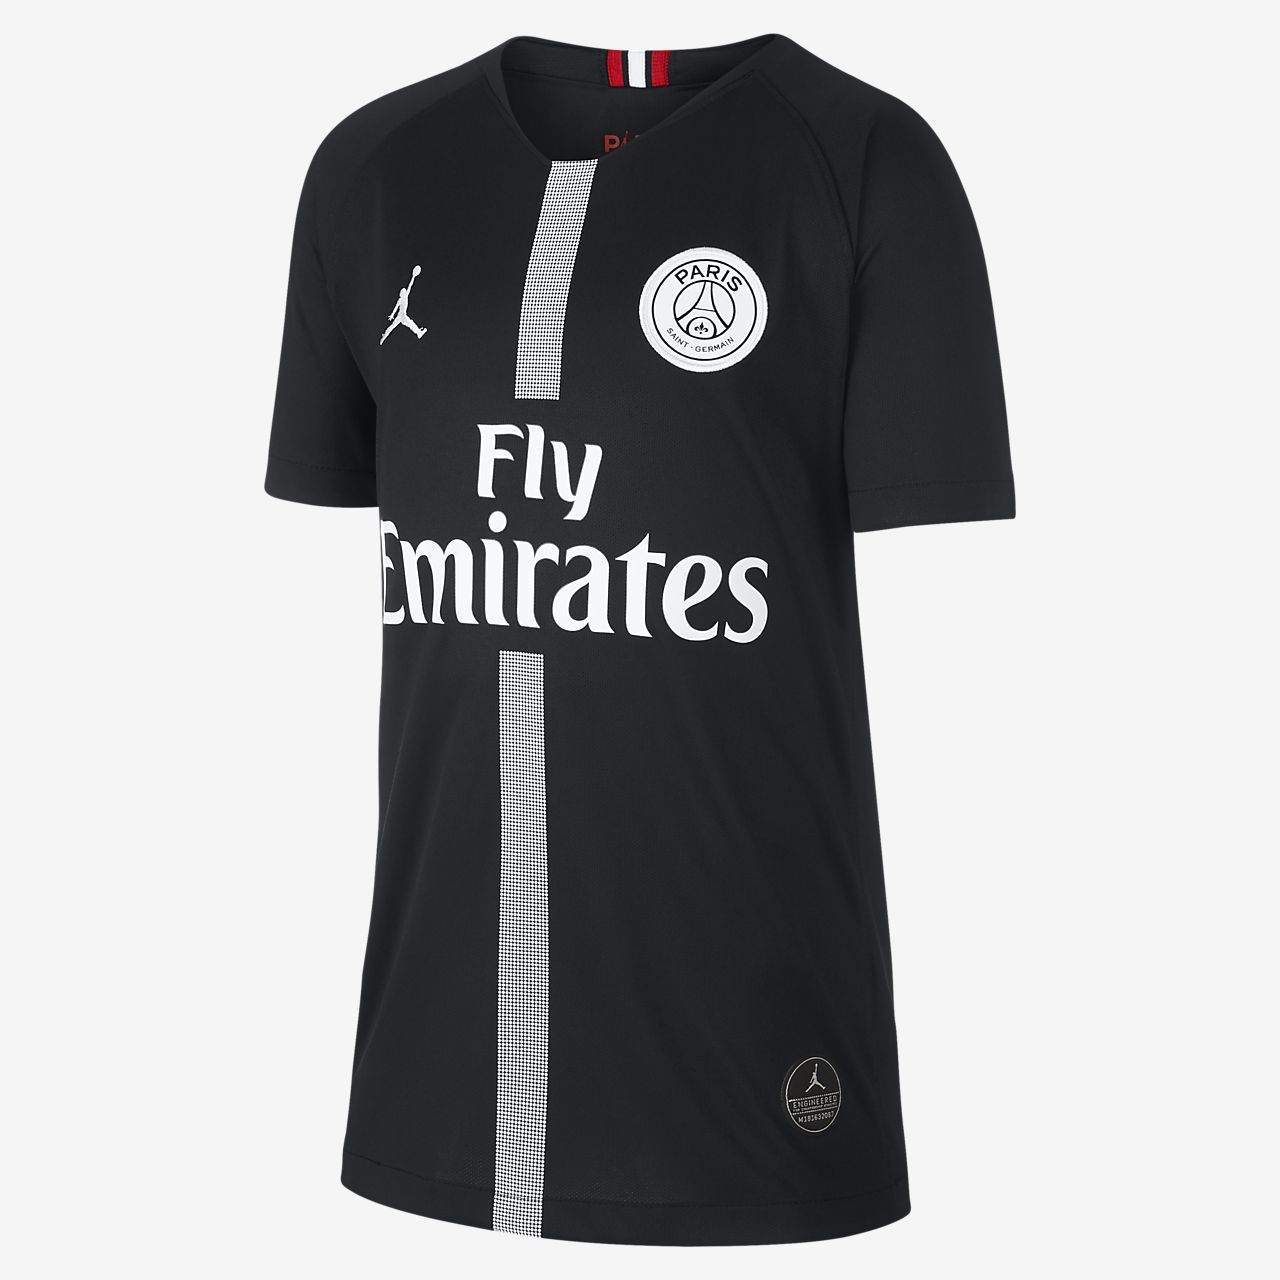 7d5301bea1b 2018/19 Paris Saint-Germain Stadium Third Older Kids' Football Shirt ...